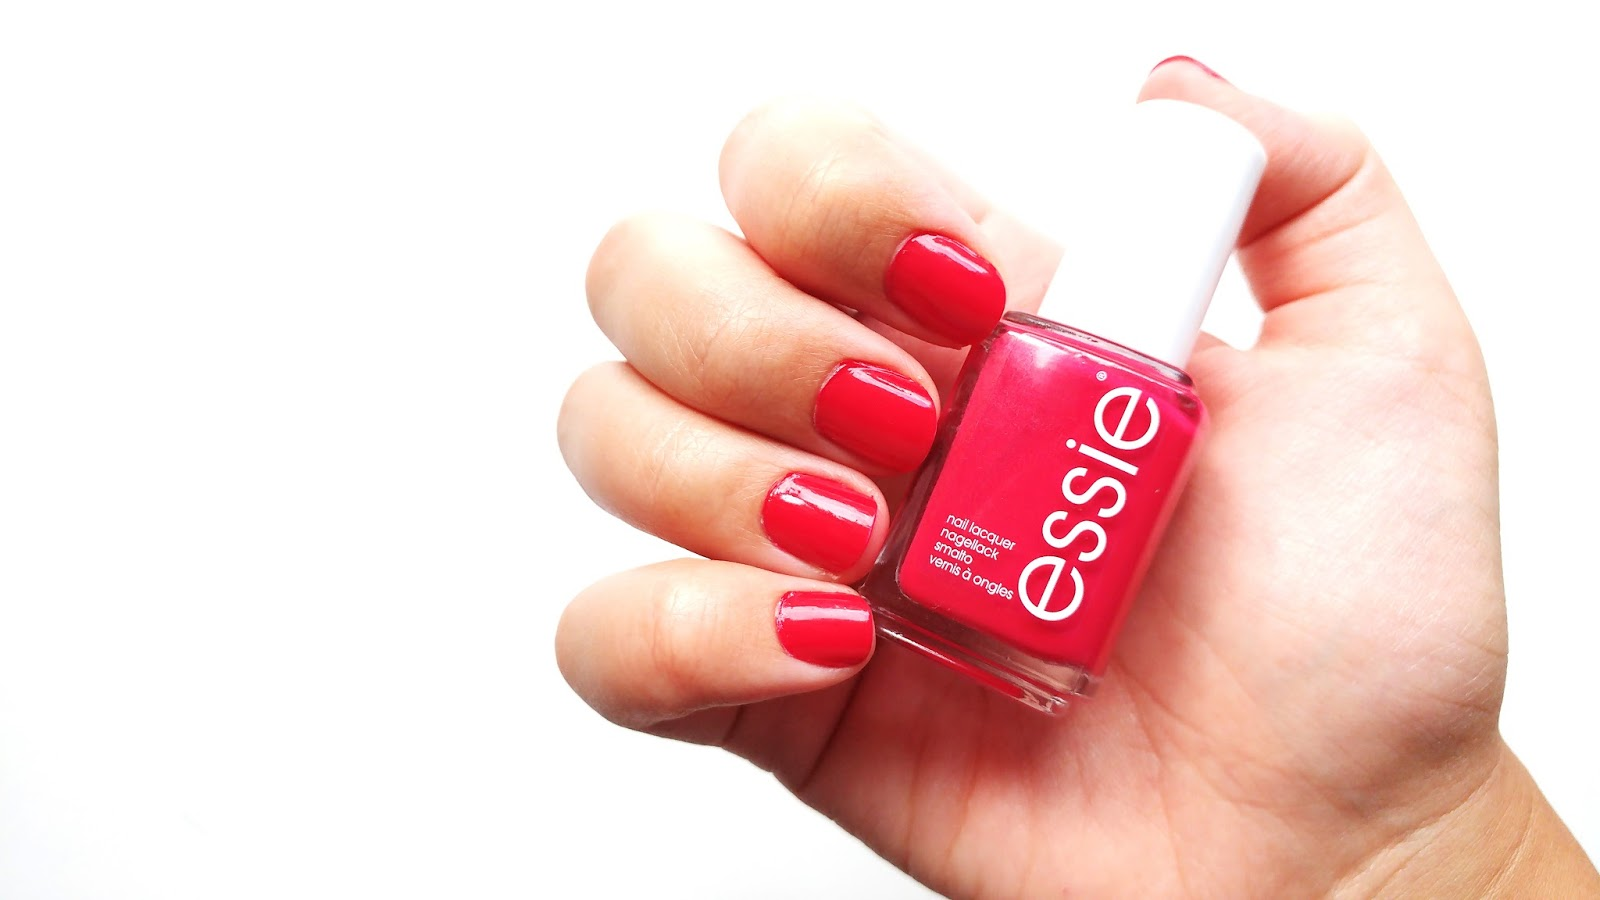 Essie Winter Collection 2016 Swatched and Reviewed, Essie Altitude Attitude